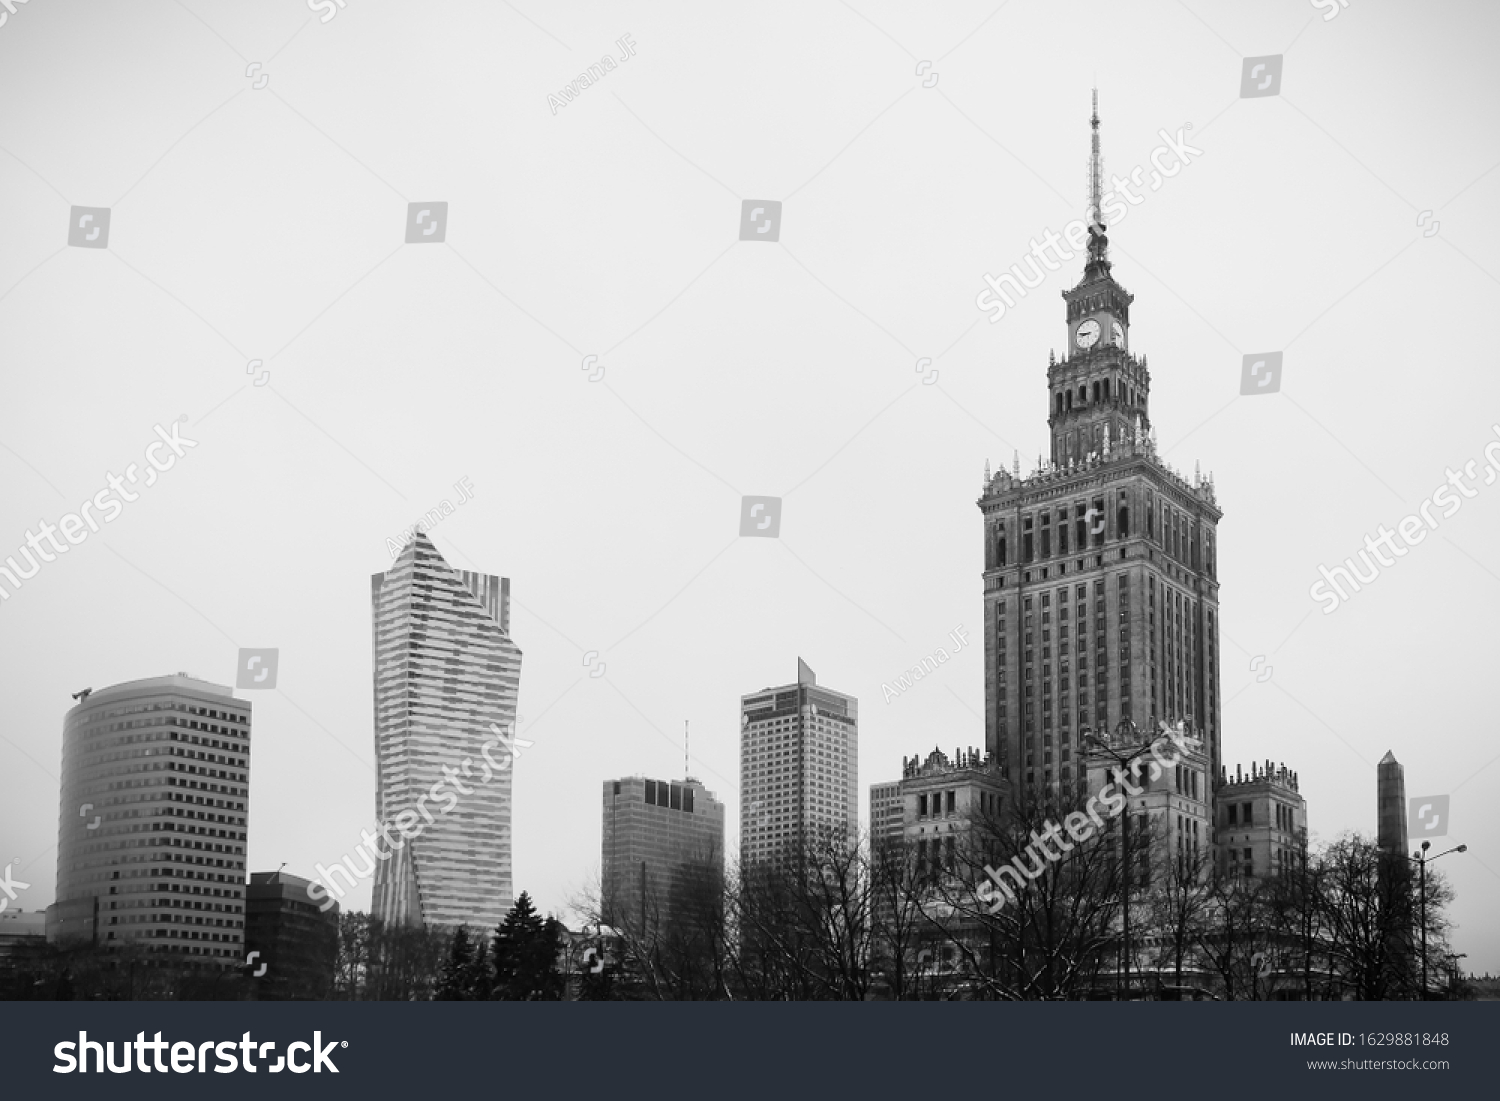 stock-photo-black-and-white-of-warsaw-sk